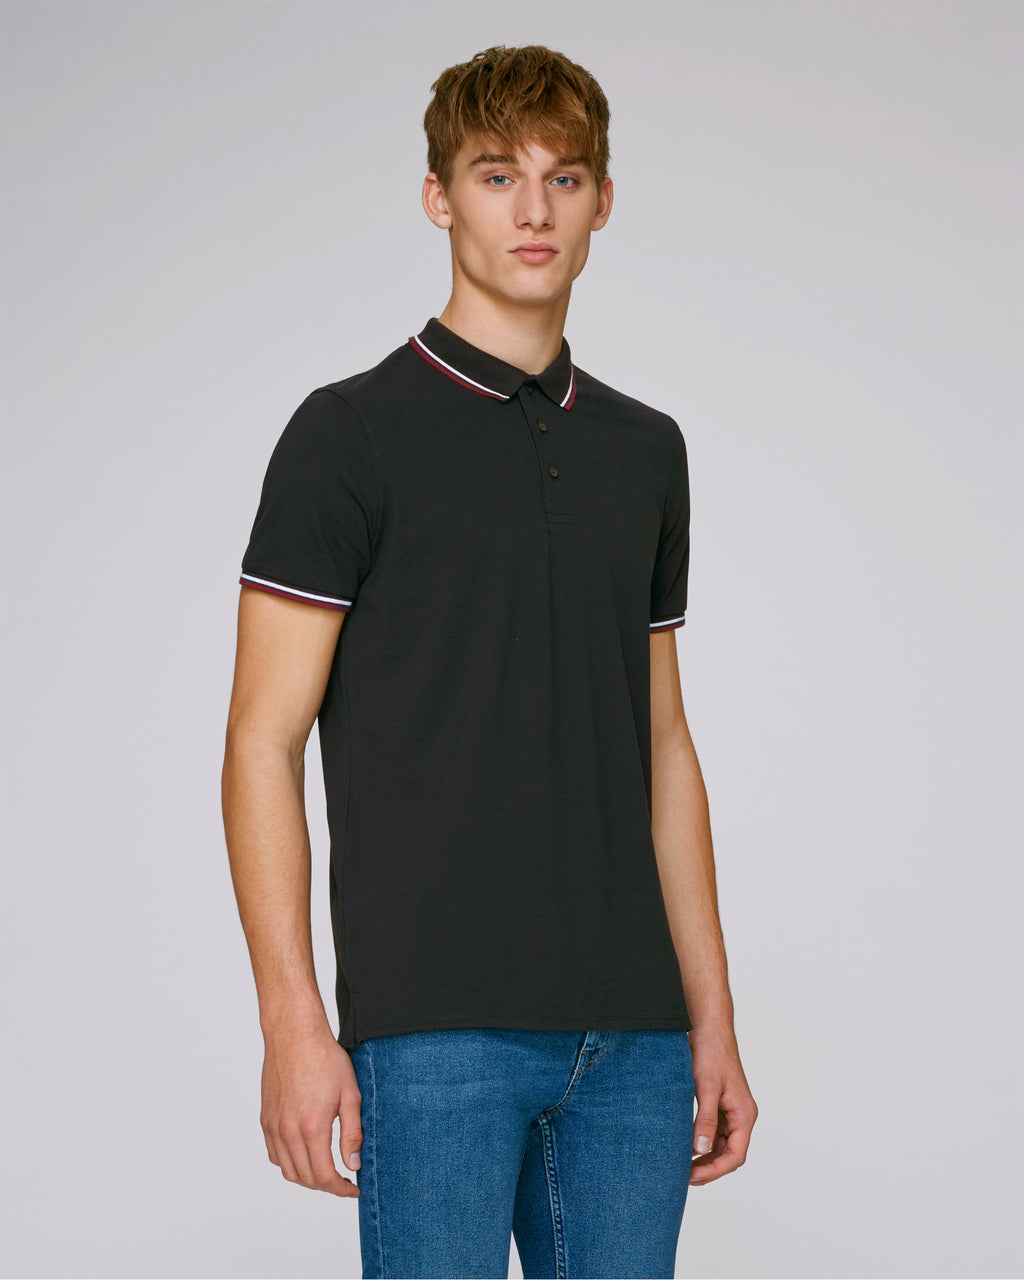 MEN'S TIPPED POLO